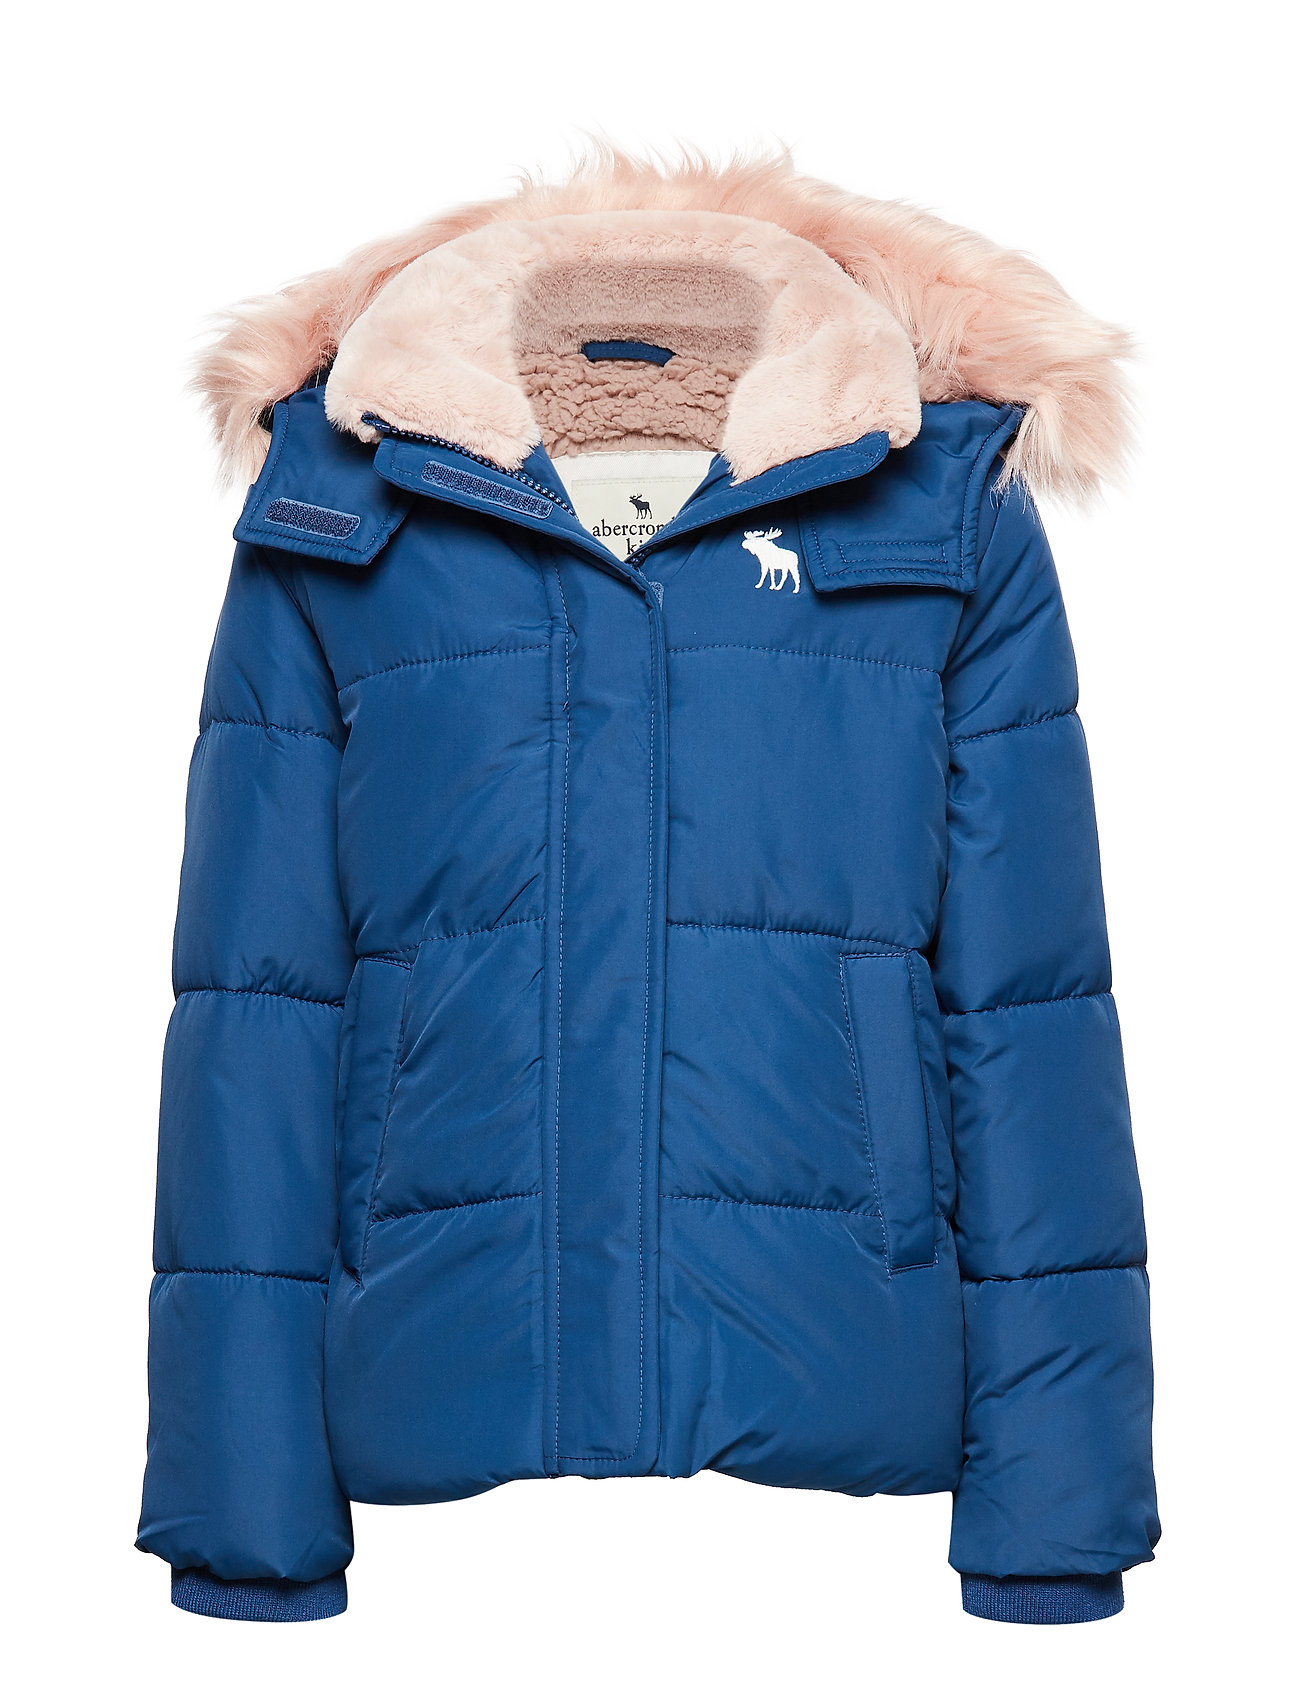 Abercrombie & Fitch Puffer - TURQUOISE